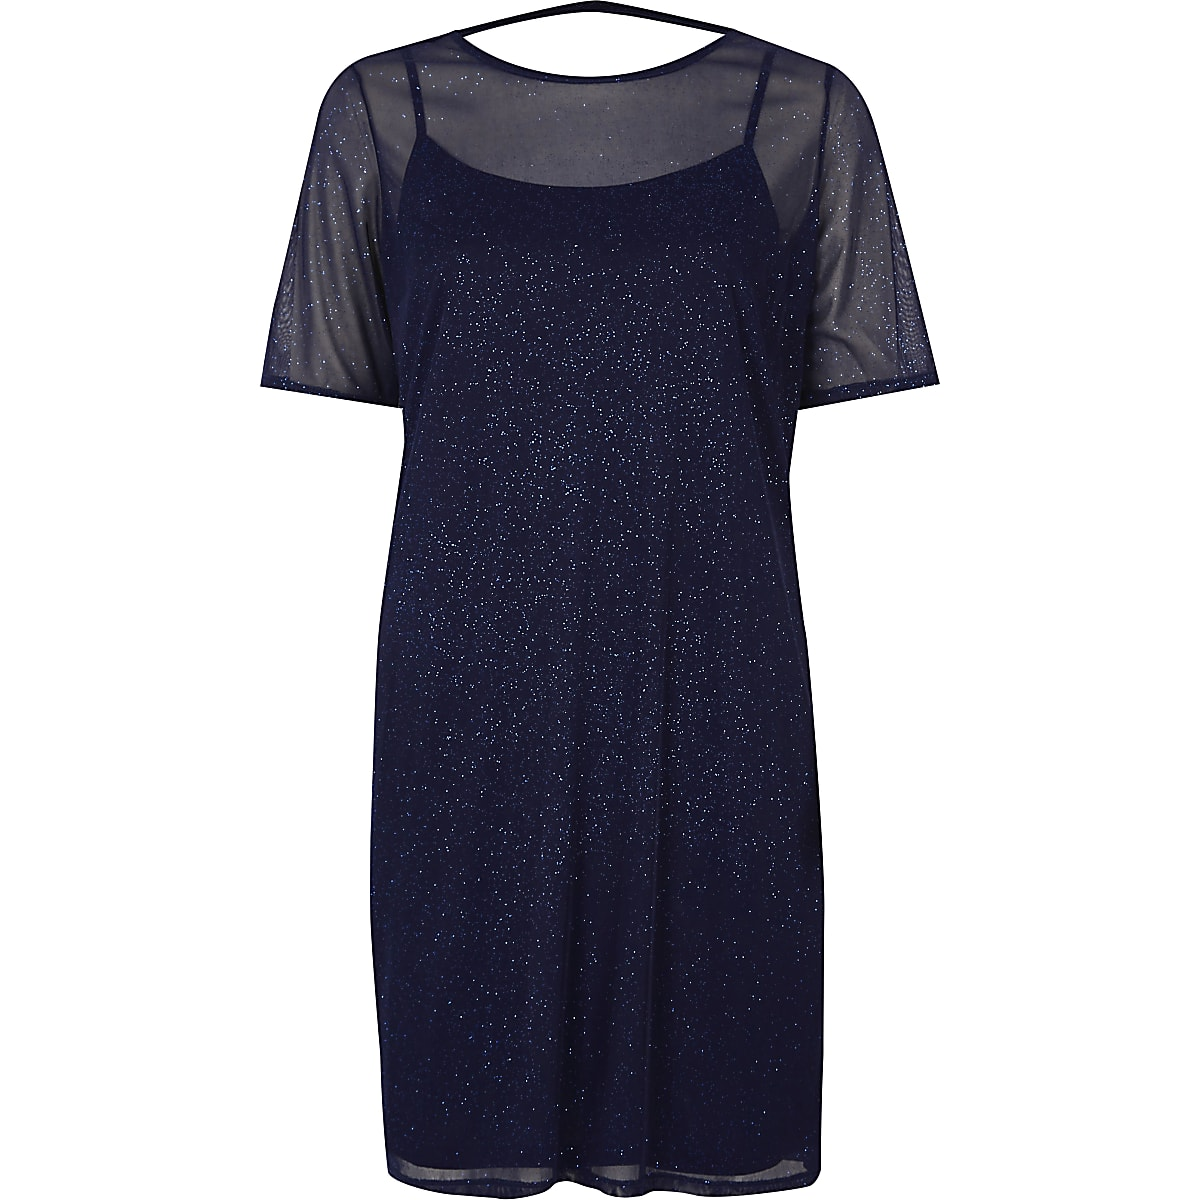 Dark blue glitter mesh T-shirt dress